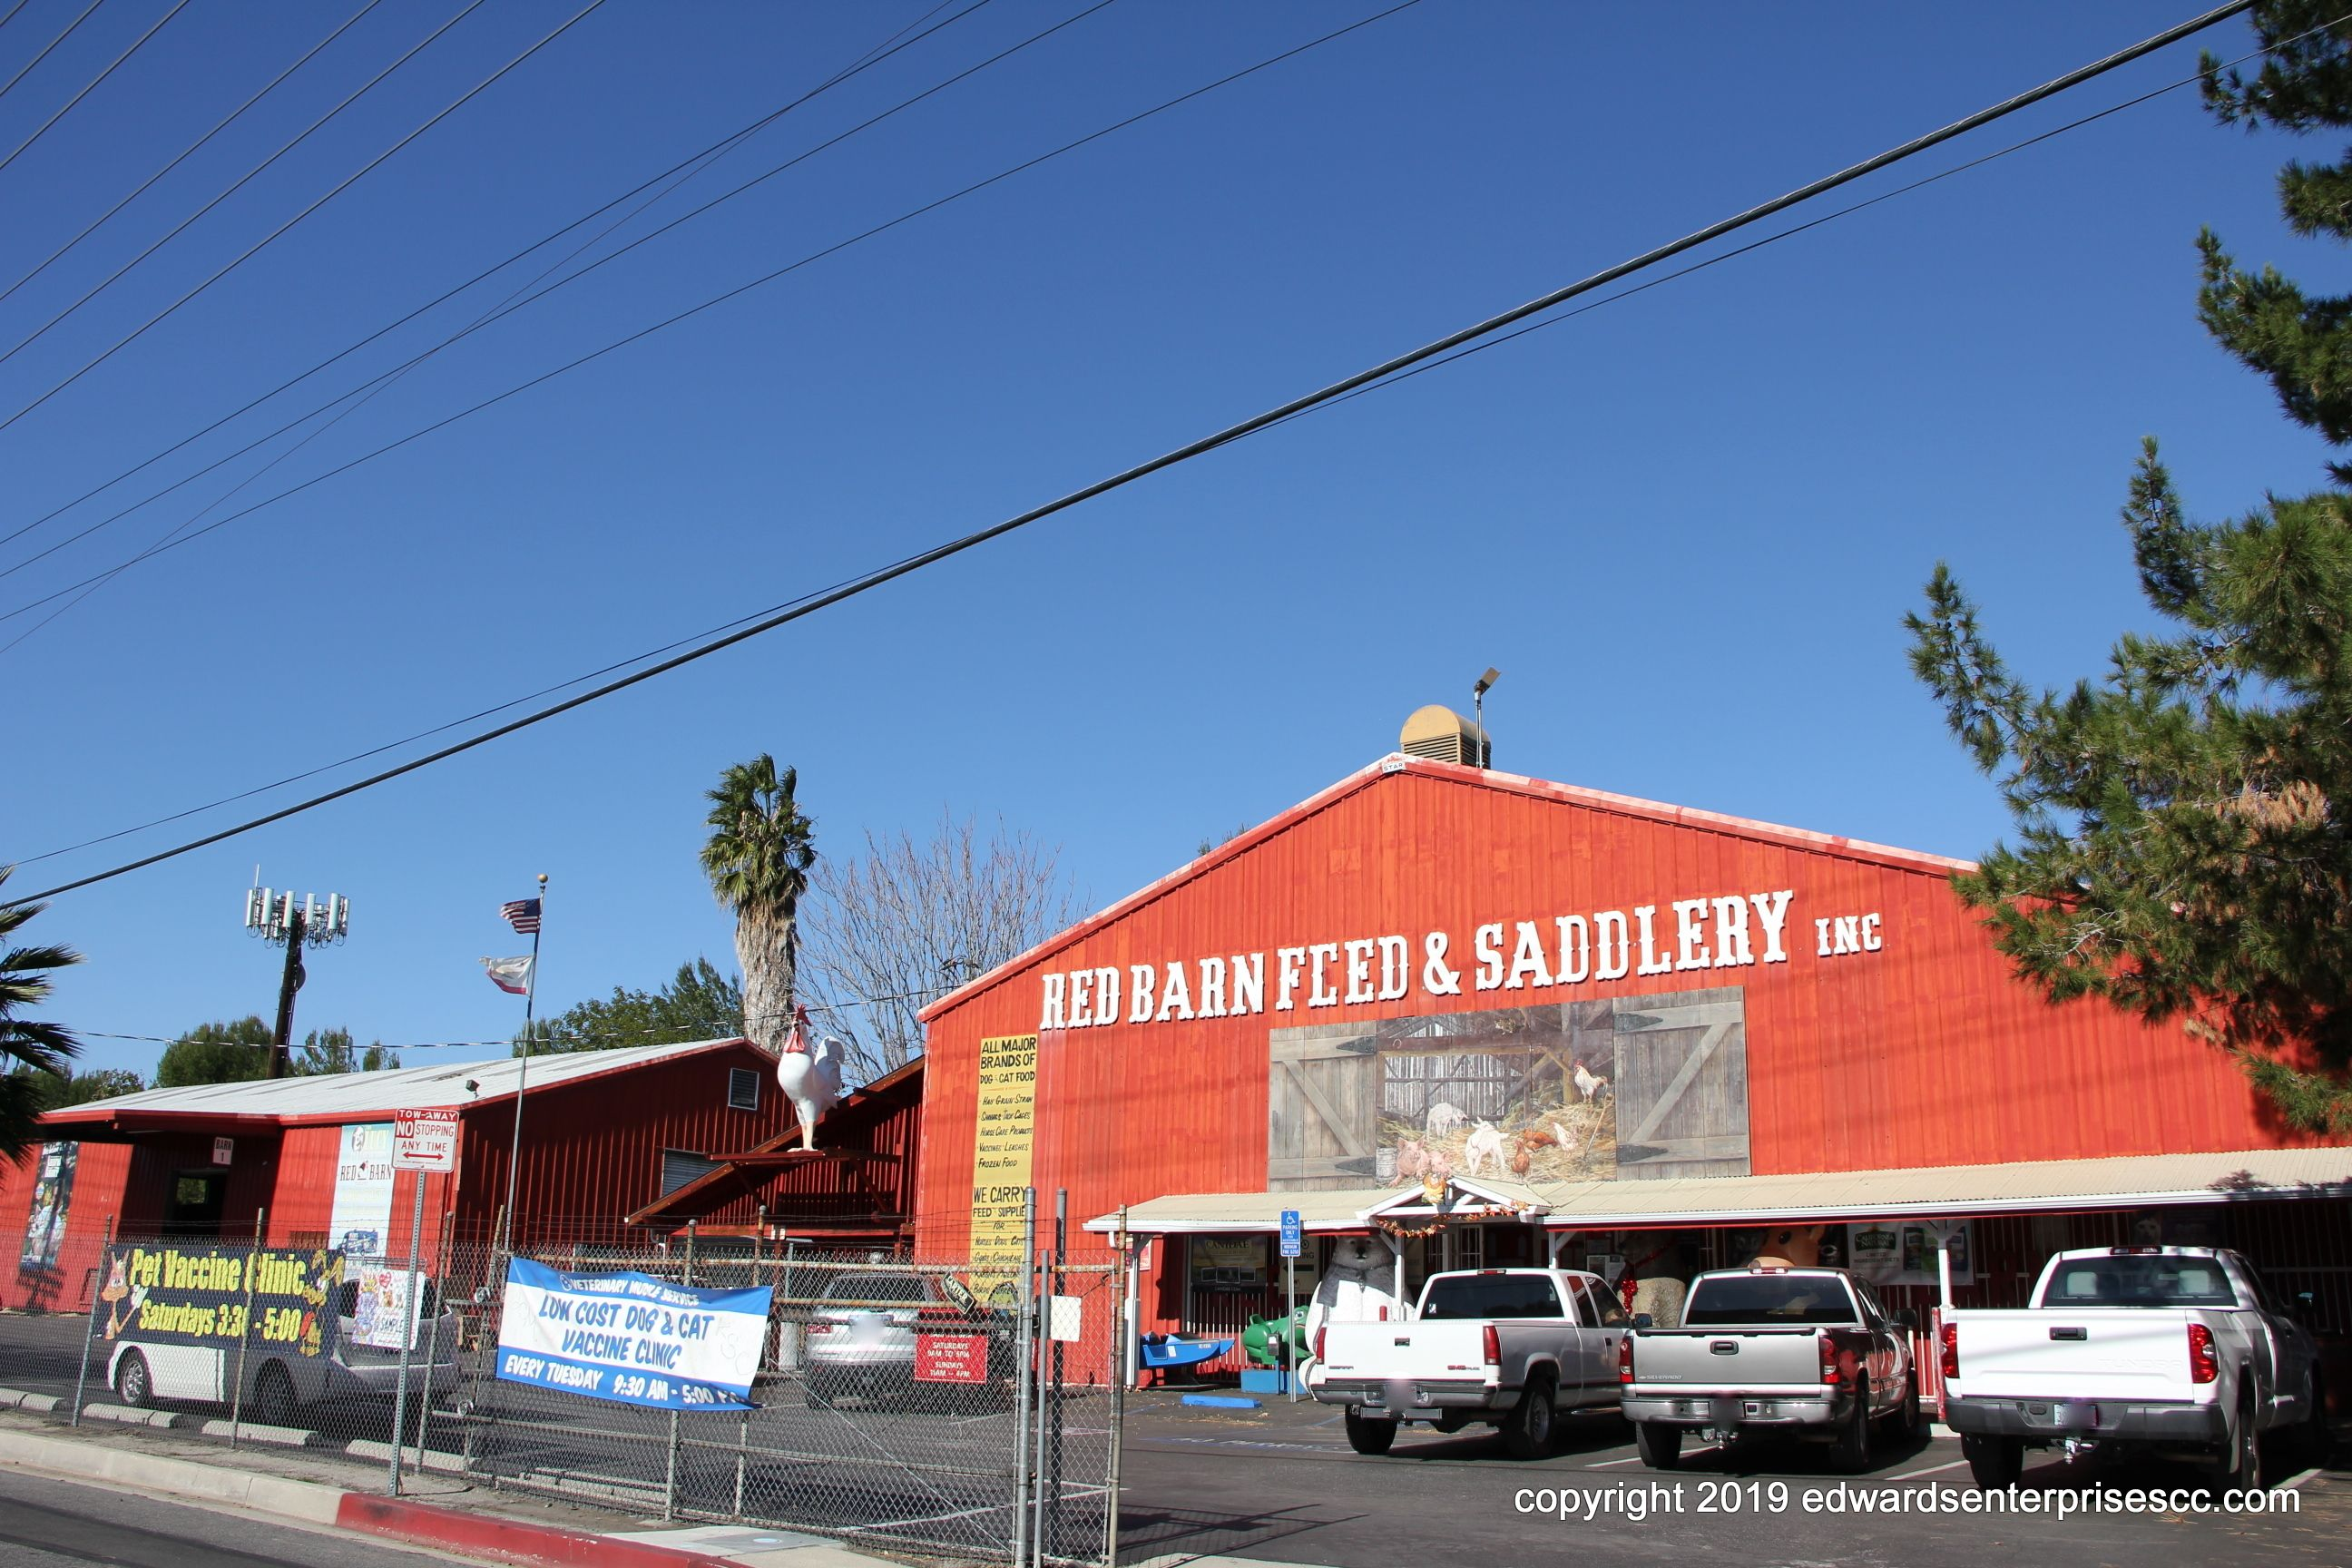 The Red Barn Feed Saddlery In Tarzana Has Been Serving Tarzana For Over 50 Years With Pet Supplies Livestock Needs And Low Cos Red Barn Wood Repair Remodel